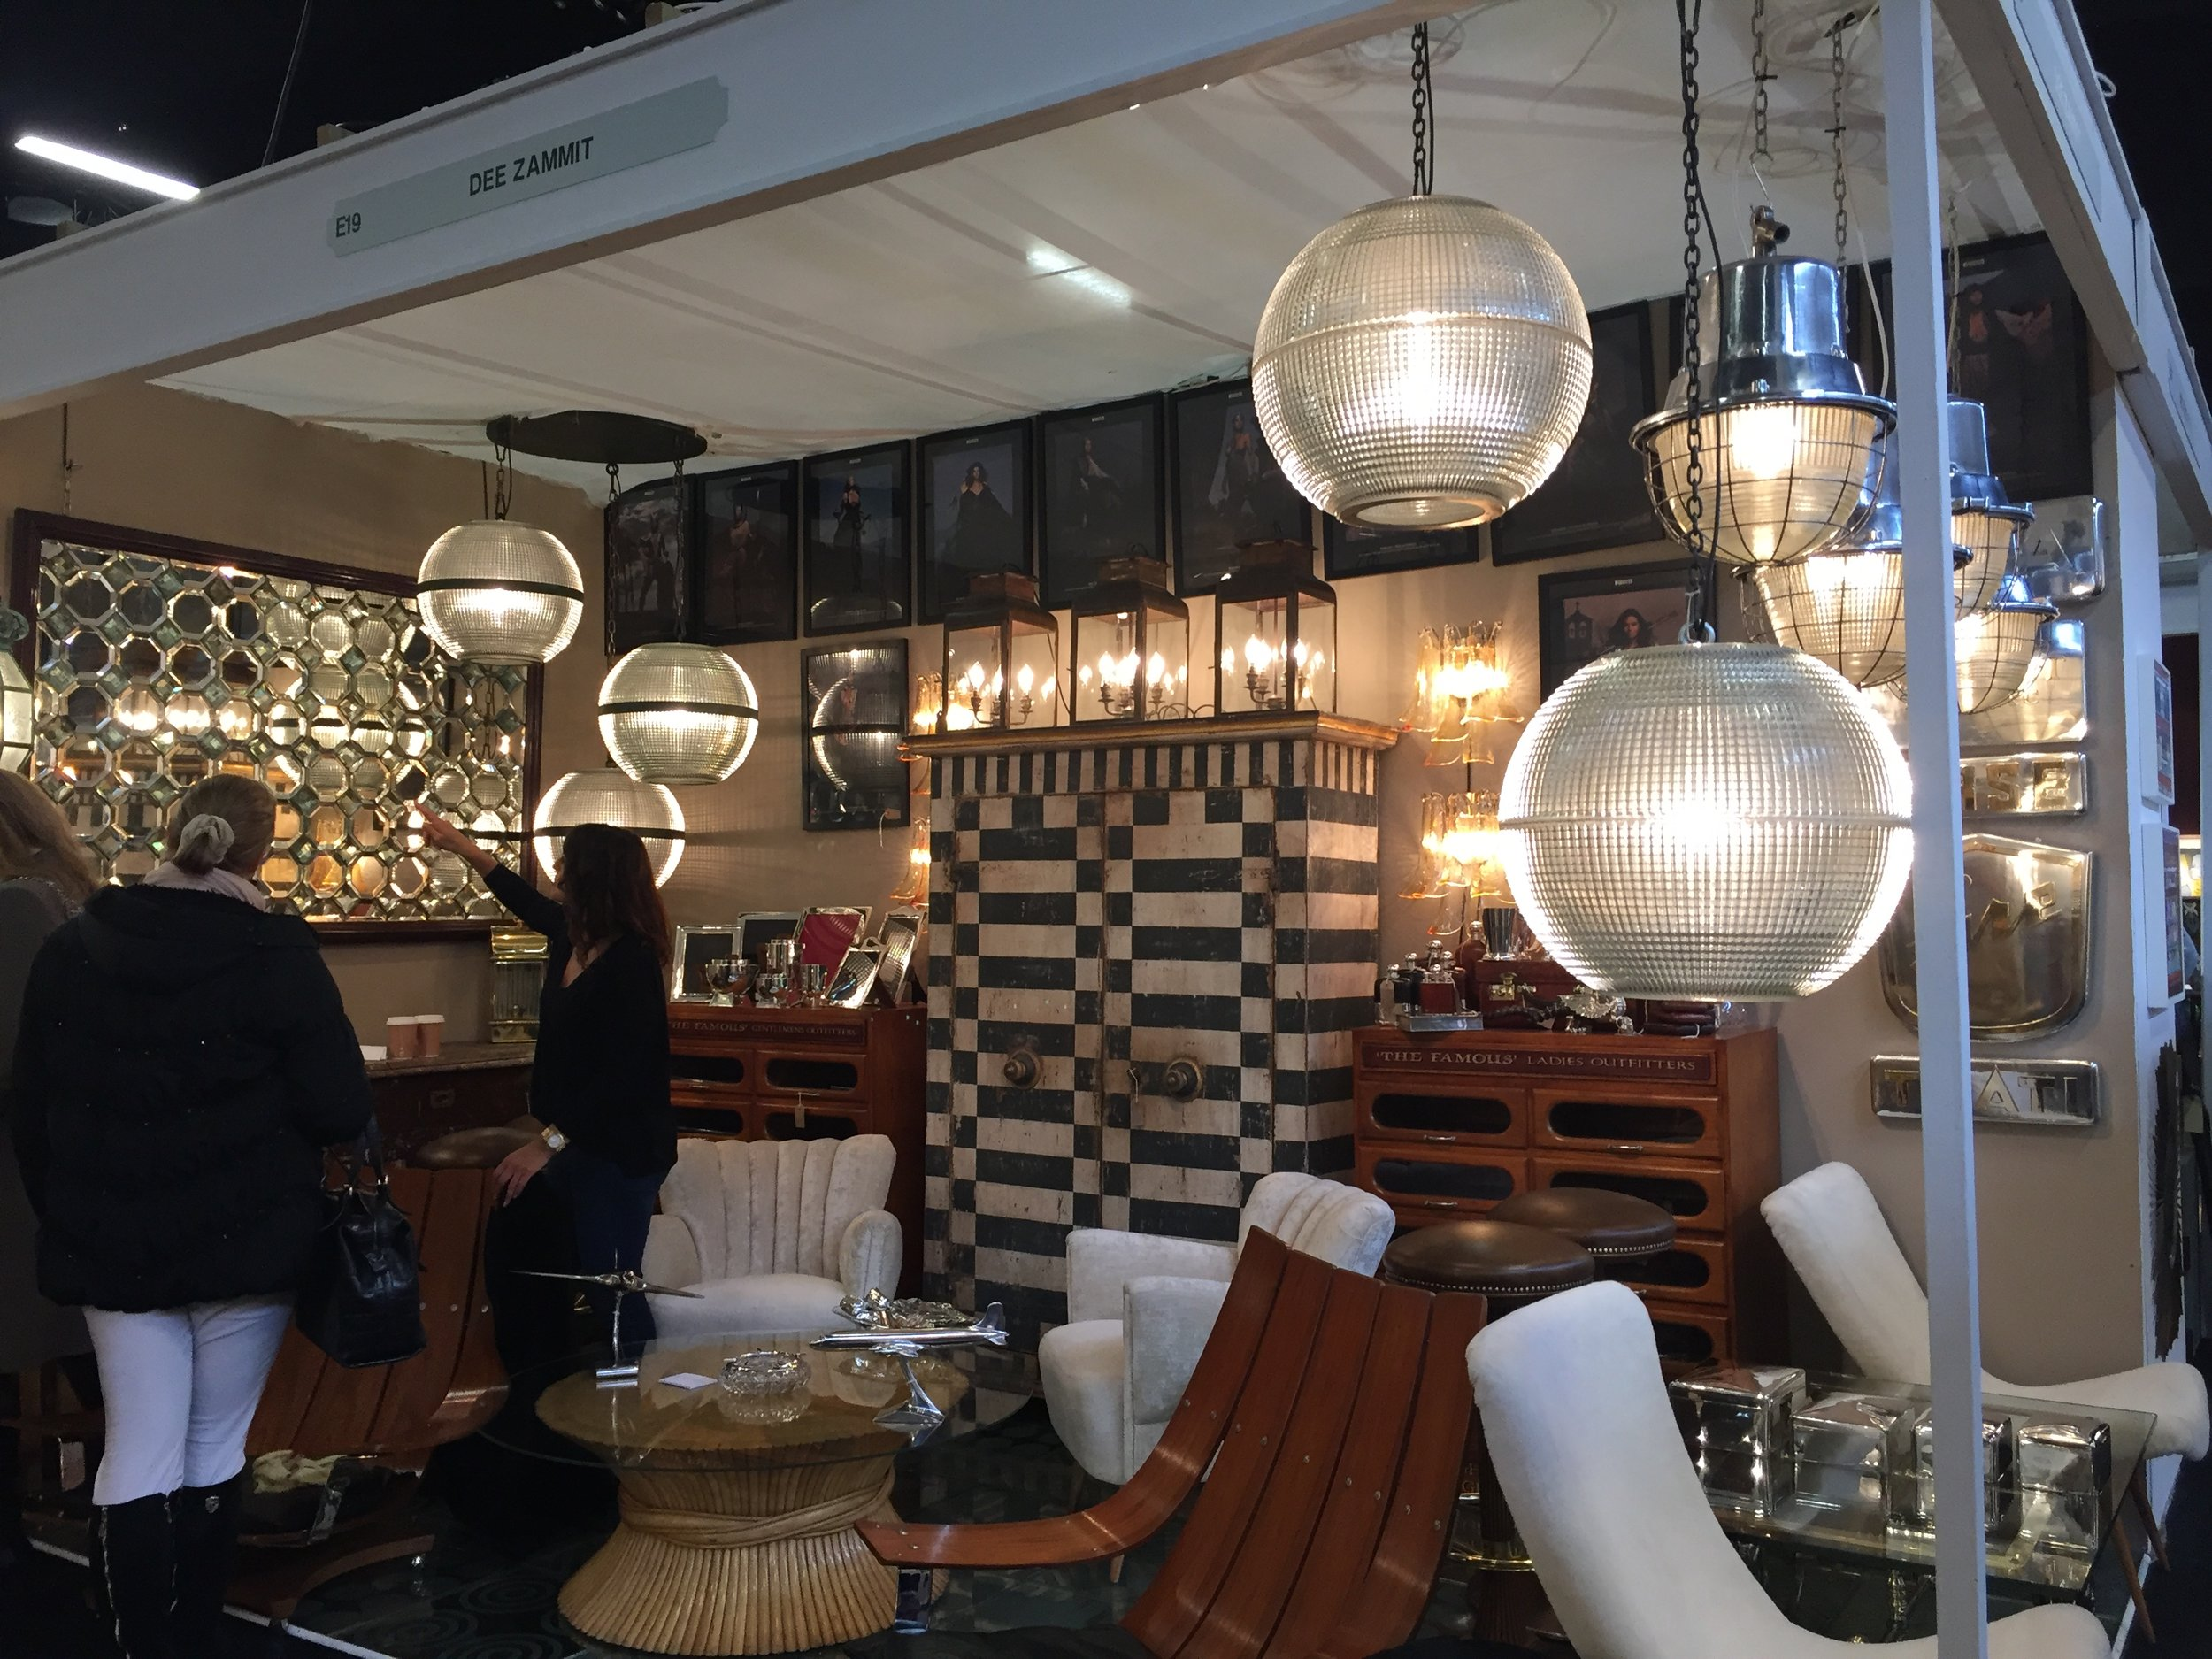 Dee Zammit  has a shop in Portobello Rd, Notting Hill, with a beautiful collection of interesting lights and furniture.